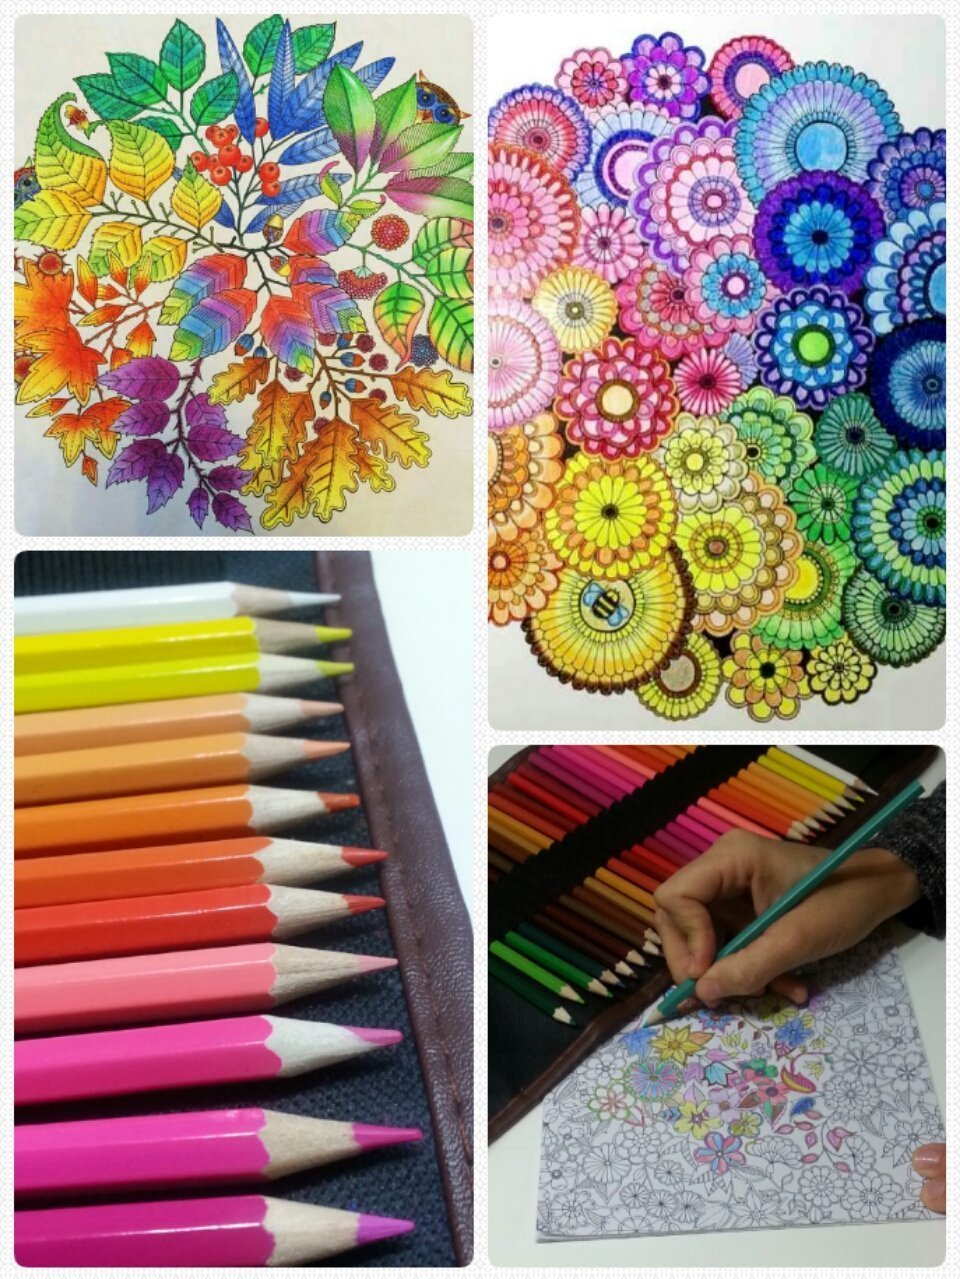 "48 Professional Art Colored Pencils, Non-toxic Drawing Oil Pencils, Supplies with Roll UP Washable Canvas Pencil Bag: Enhance your creativity with this adult coloring book ""secret garden"" FREE GIFT!"